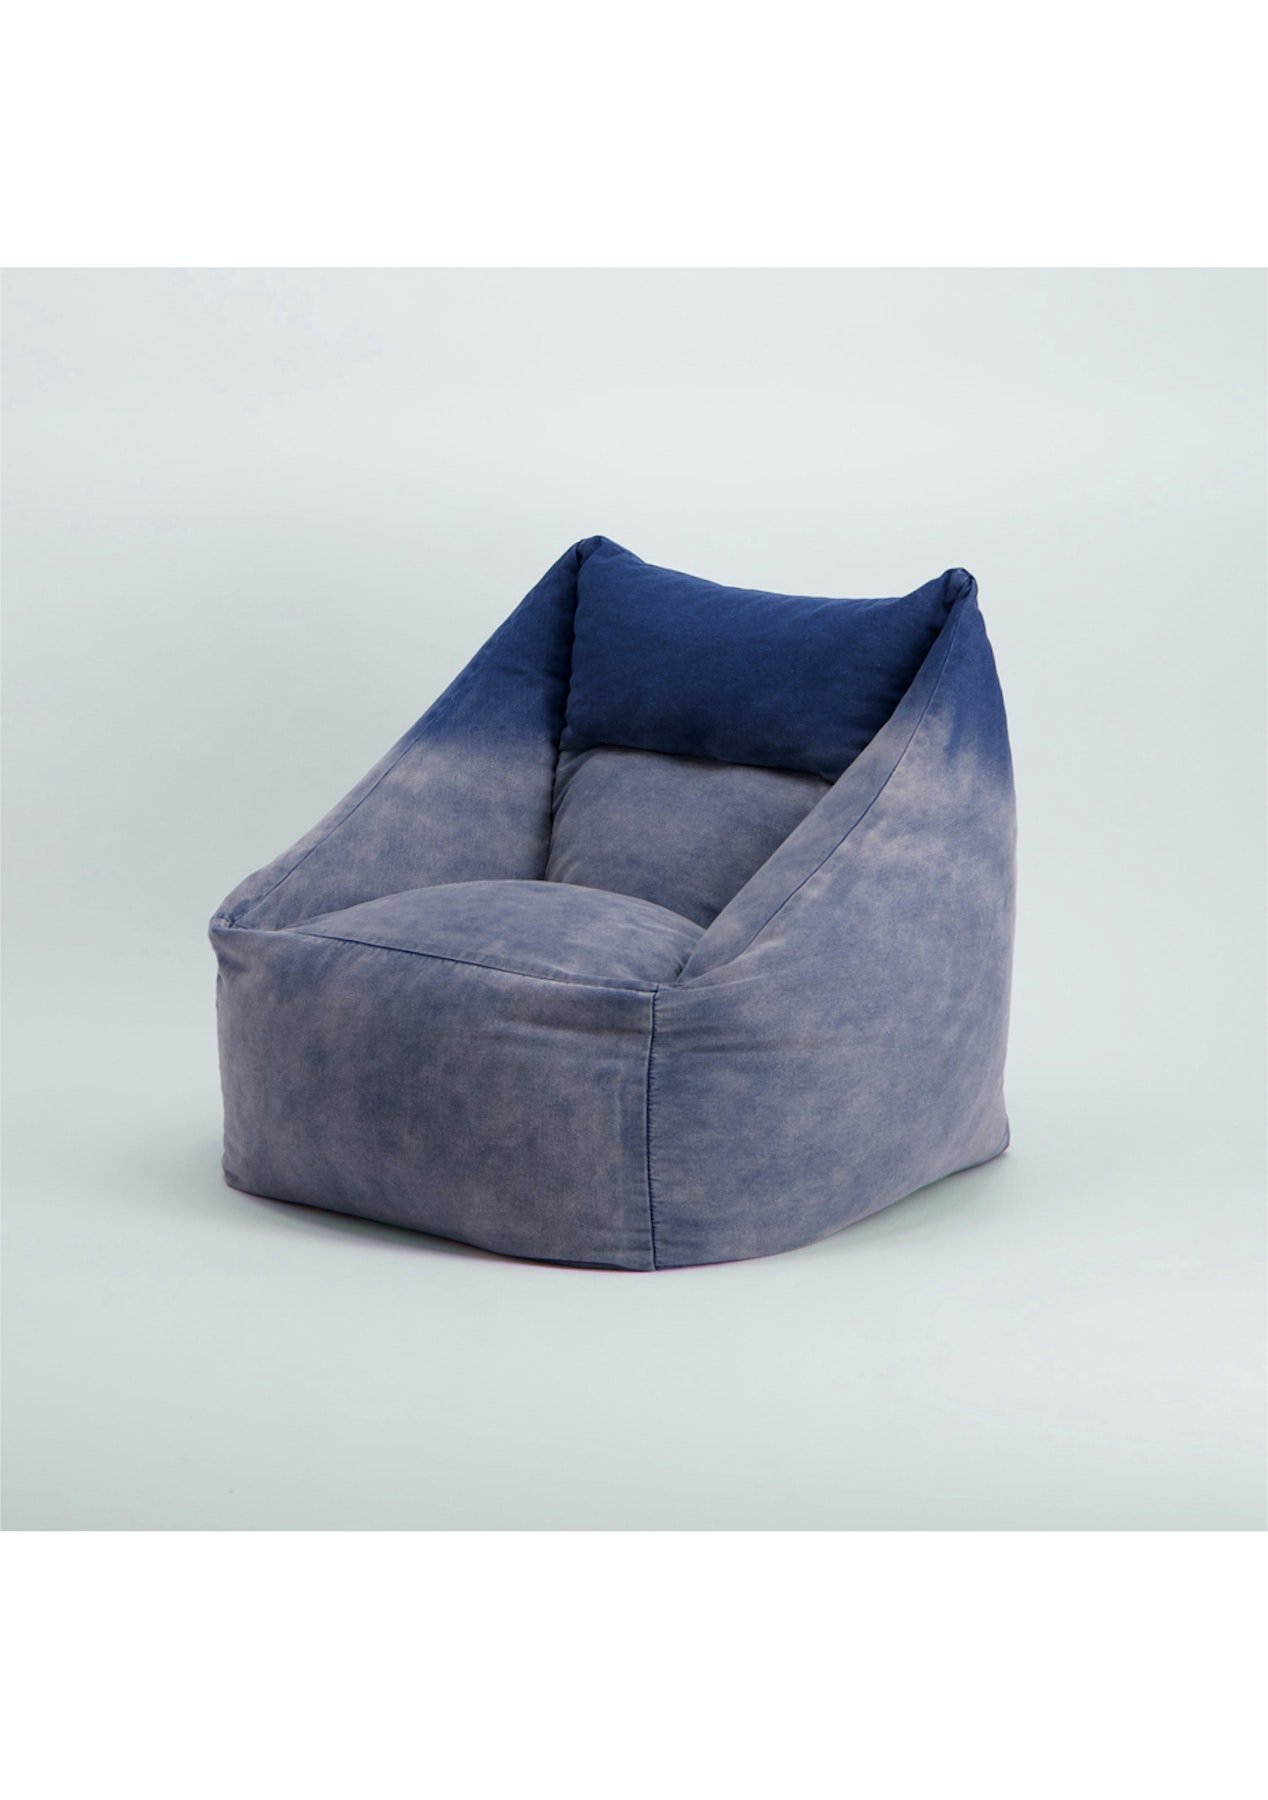 Croco  Classique Denim Bean Bag Chair  Denim